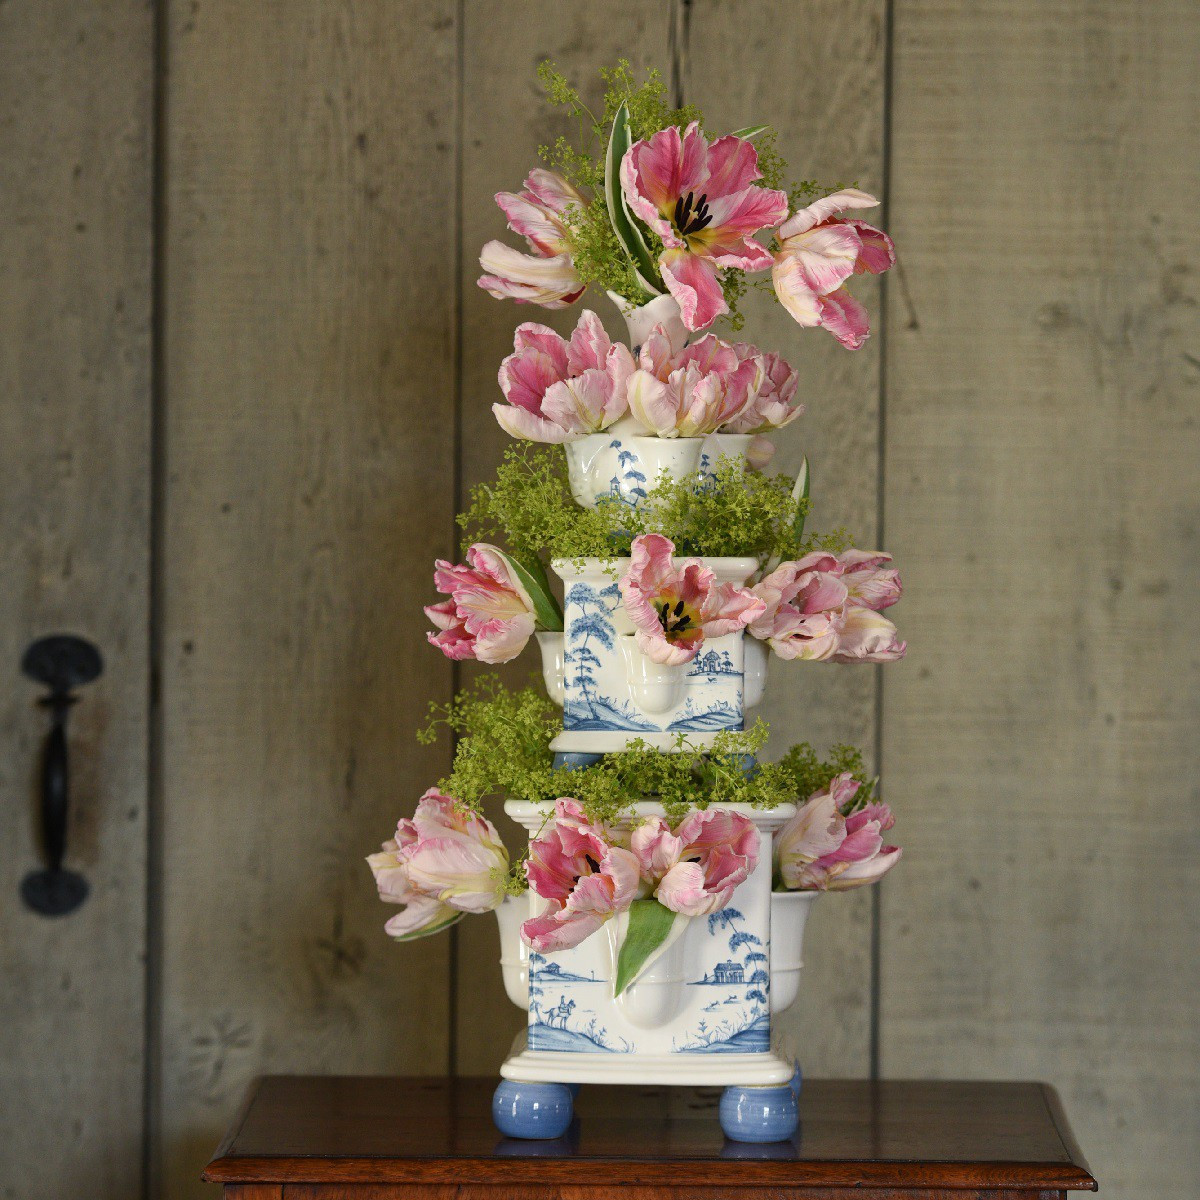 juliska glass vase of country estate delft blue tulipiere tower set 3 garden follies for march juliska jpegs 0027